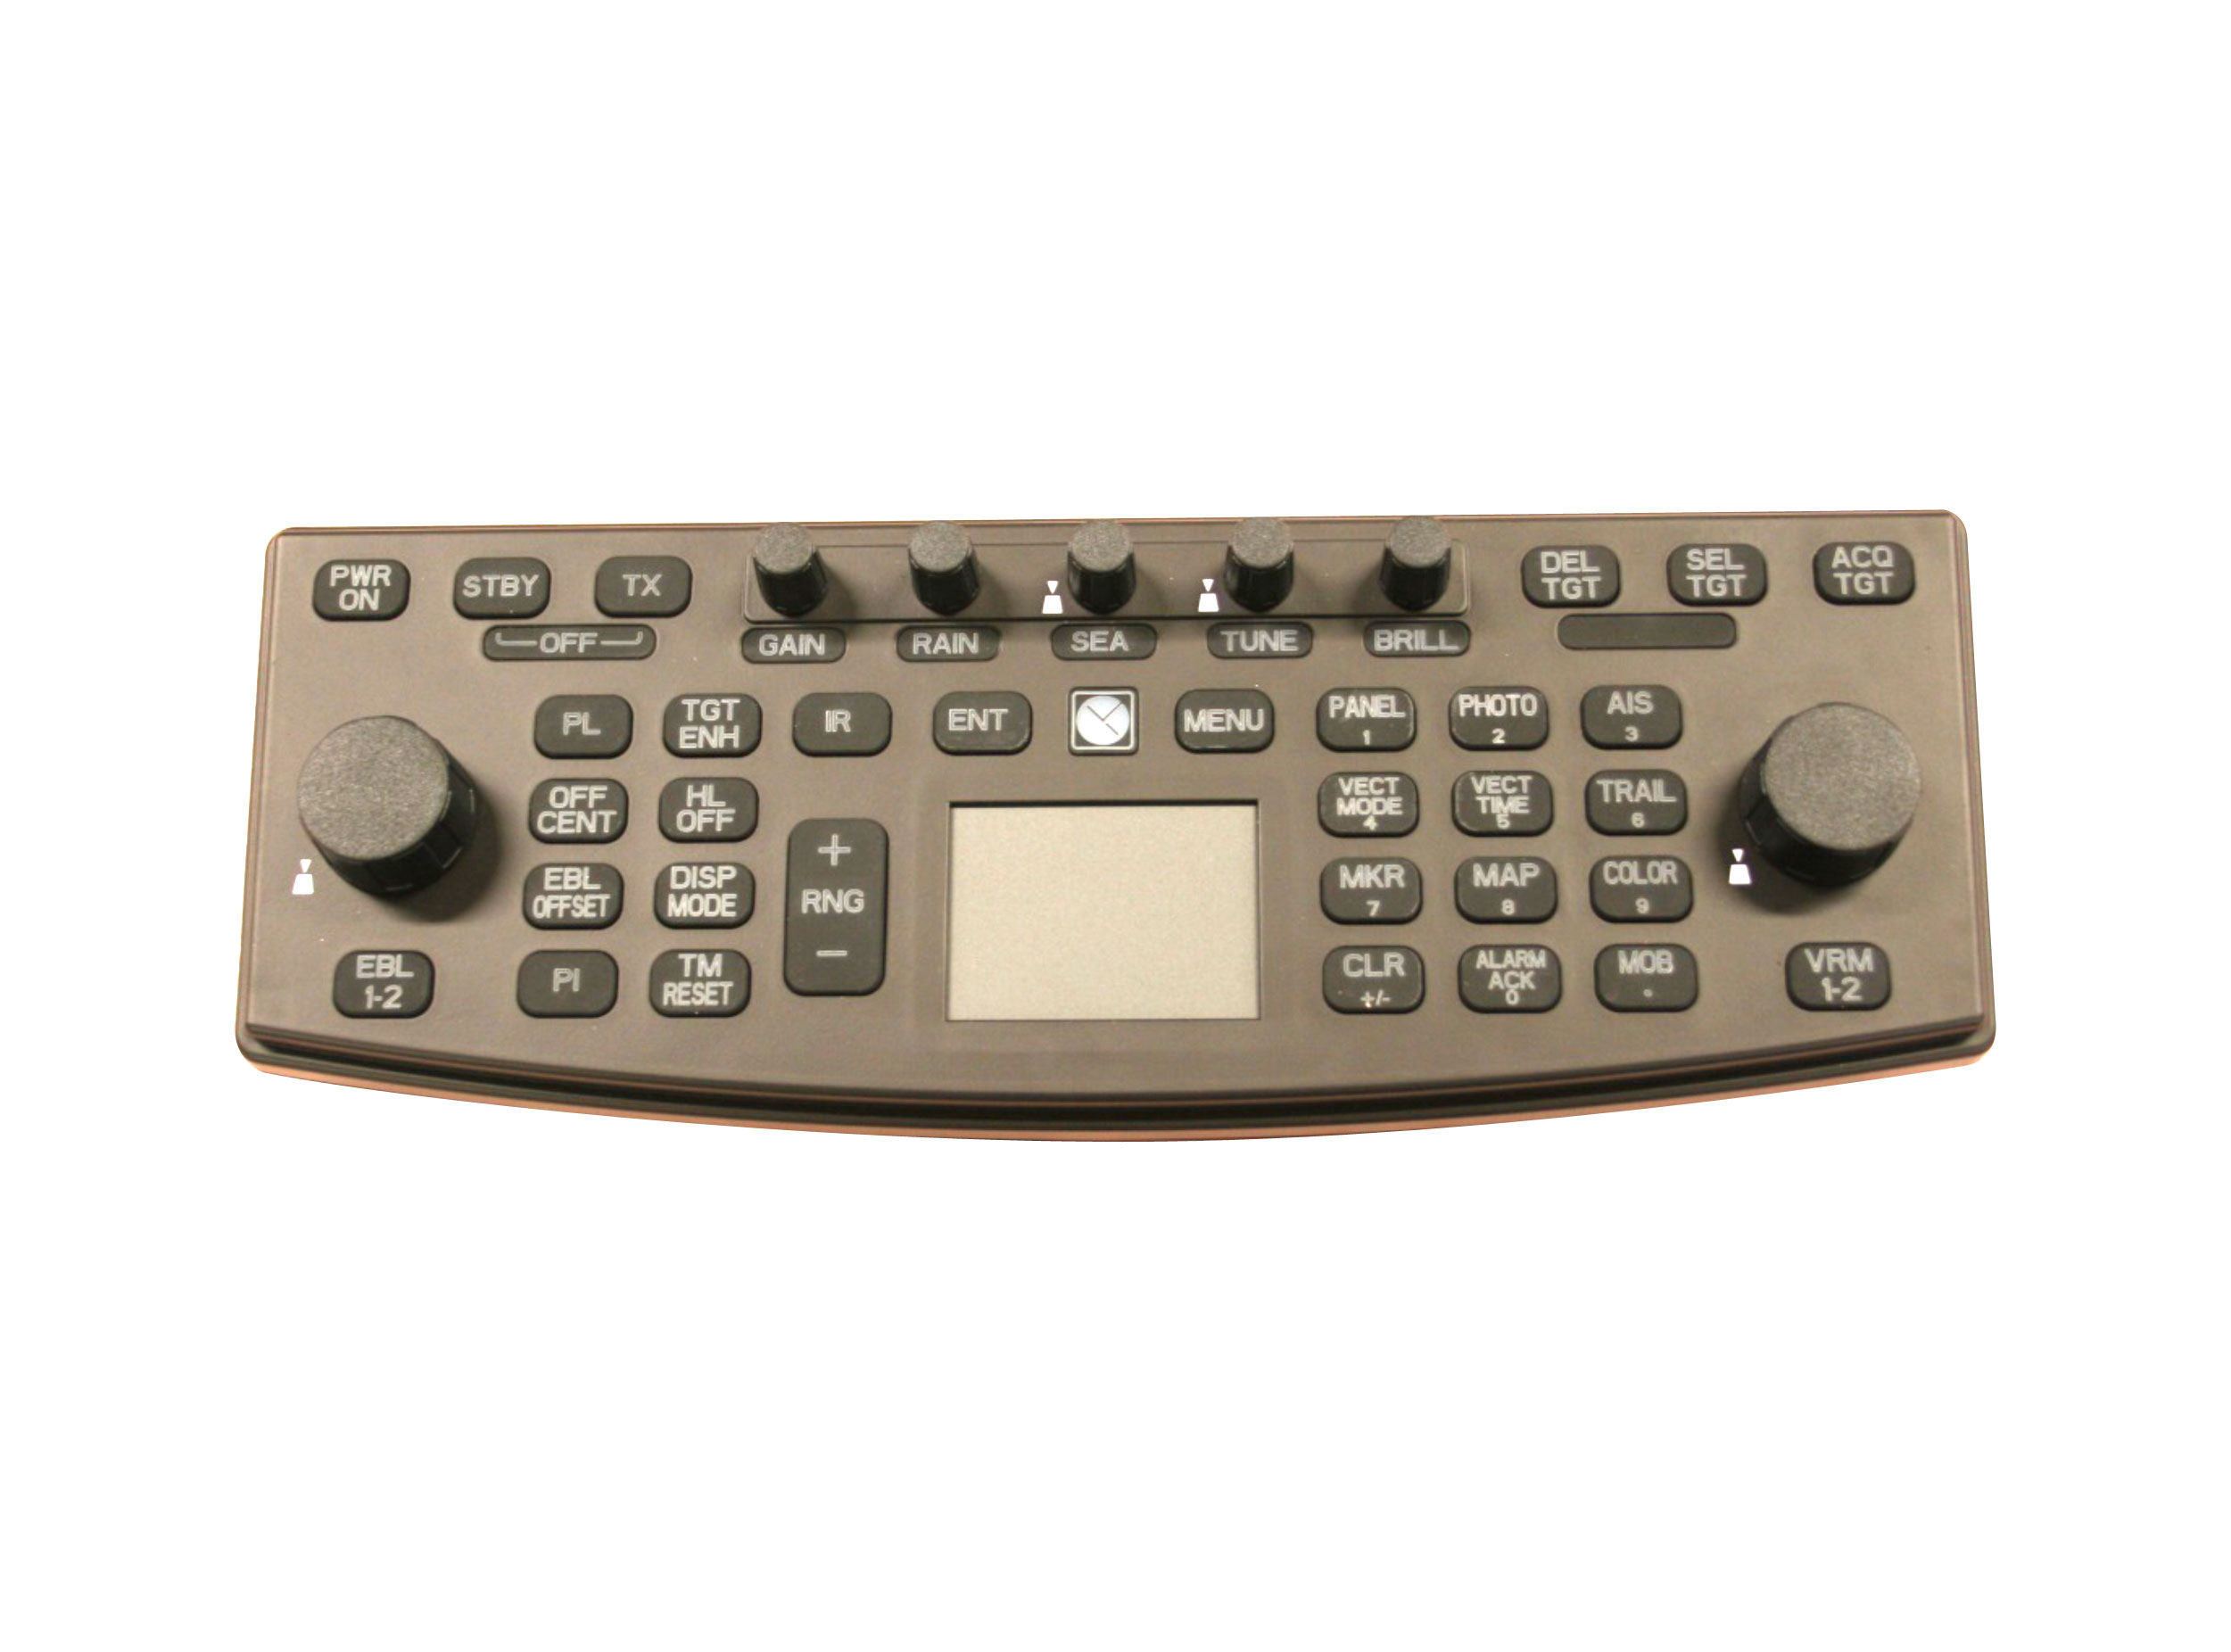 RADAR-ECDIS-Keyboard